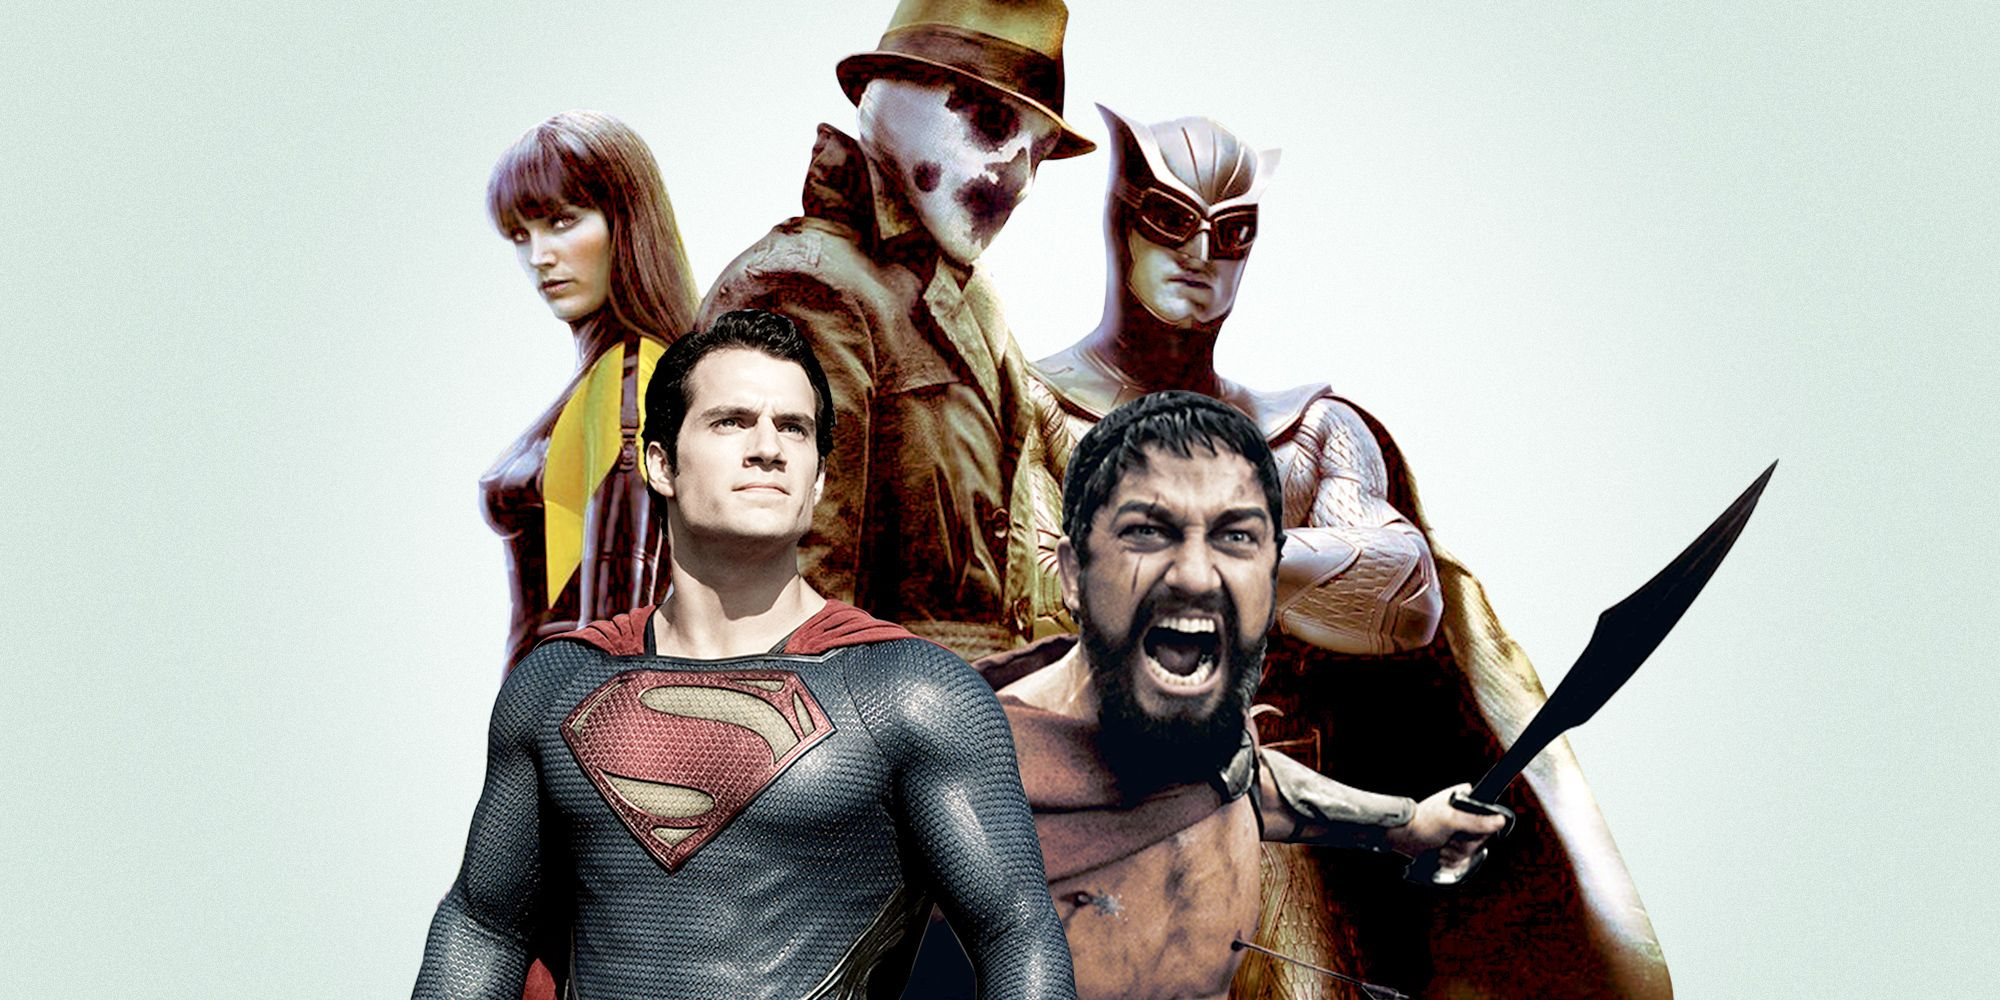 Every Zack Snyder Movie Ranked From Worst to Best